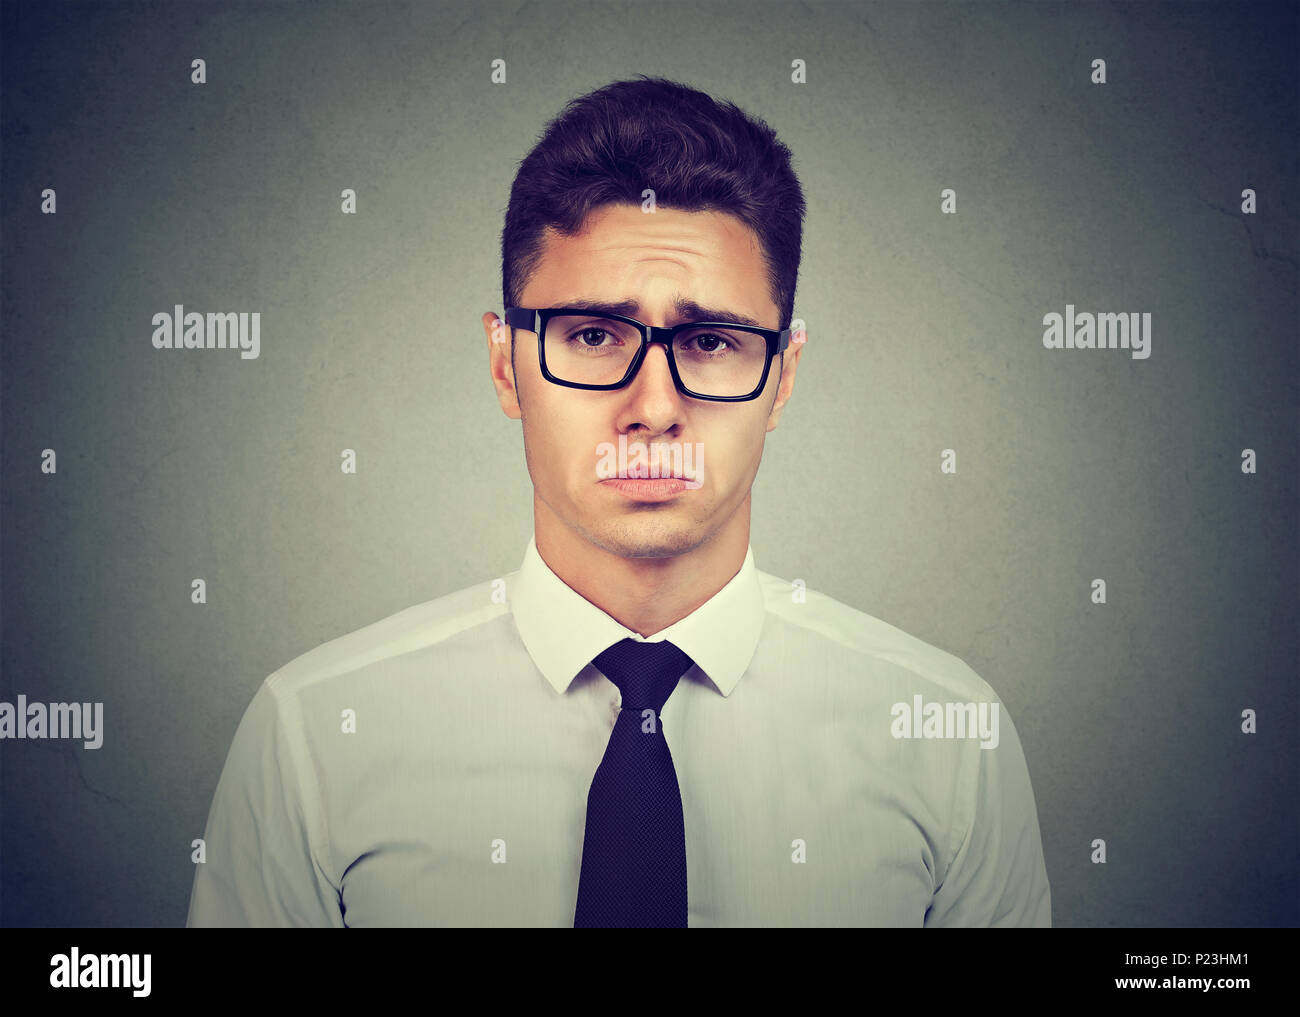 Sad pity looking young business man - Stock Image